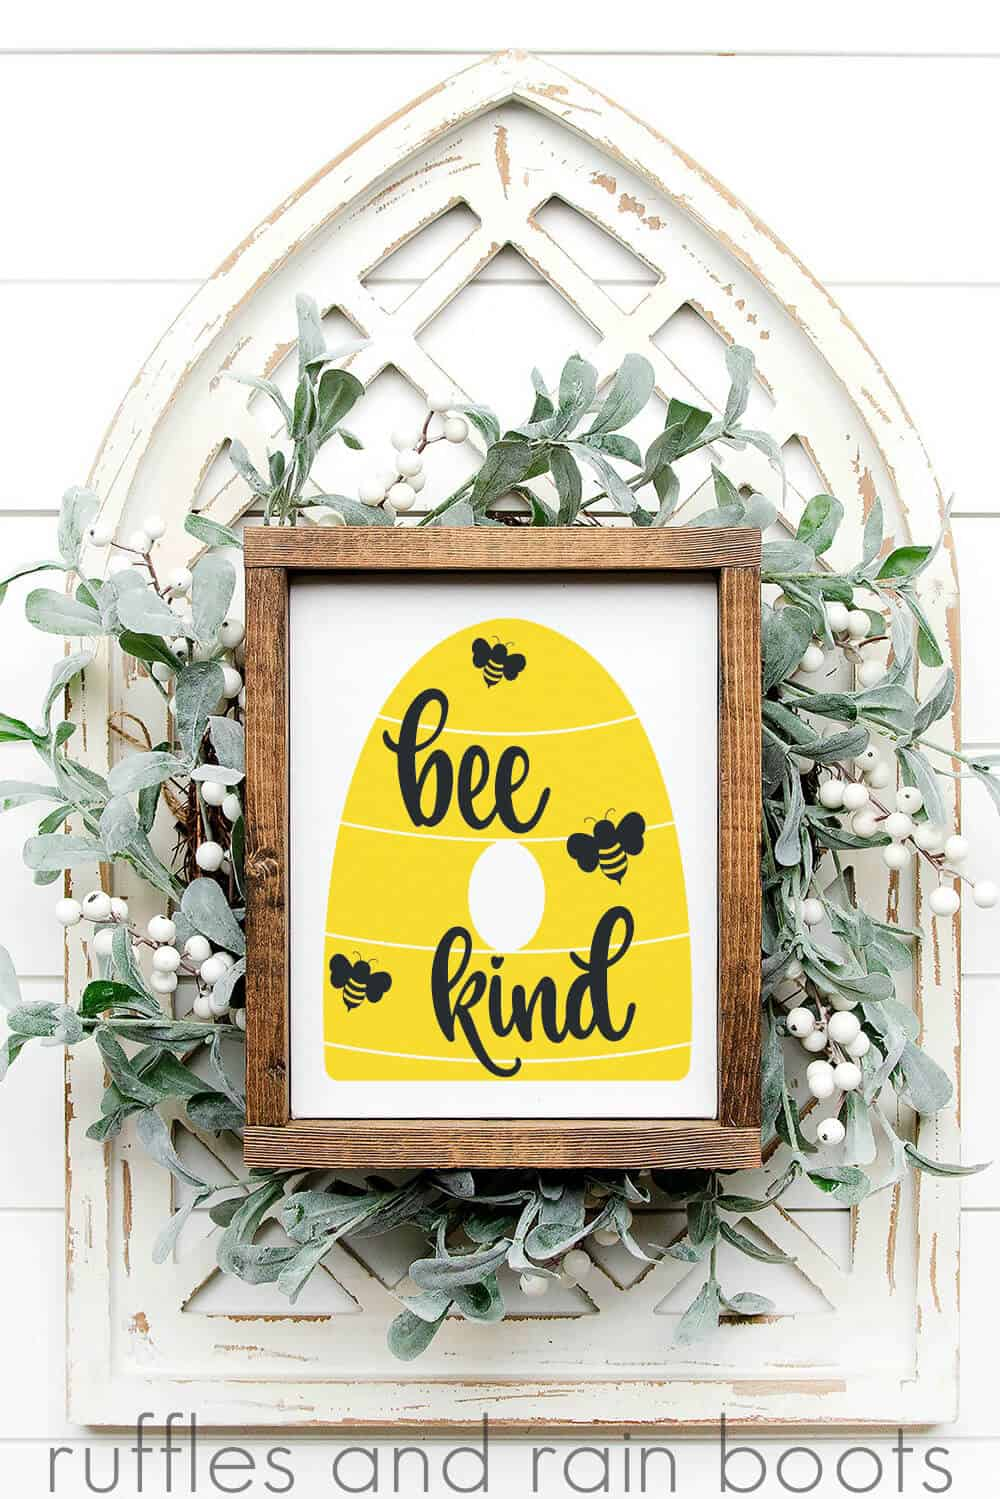 bee hive svg with bee kind cut file and bees flying V